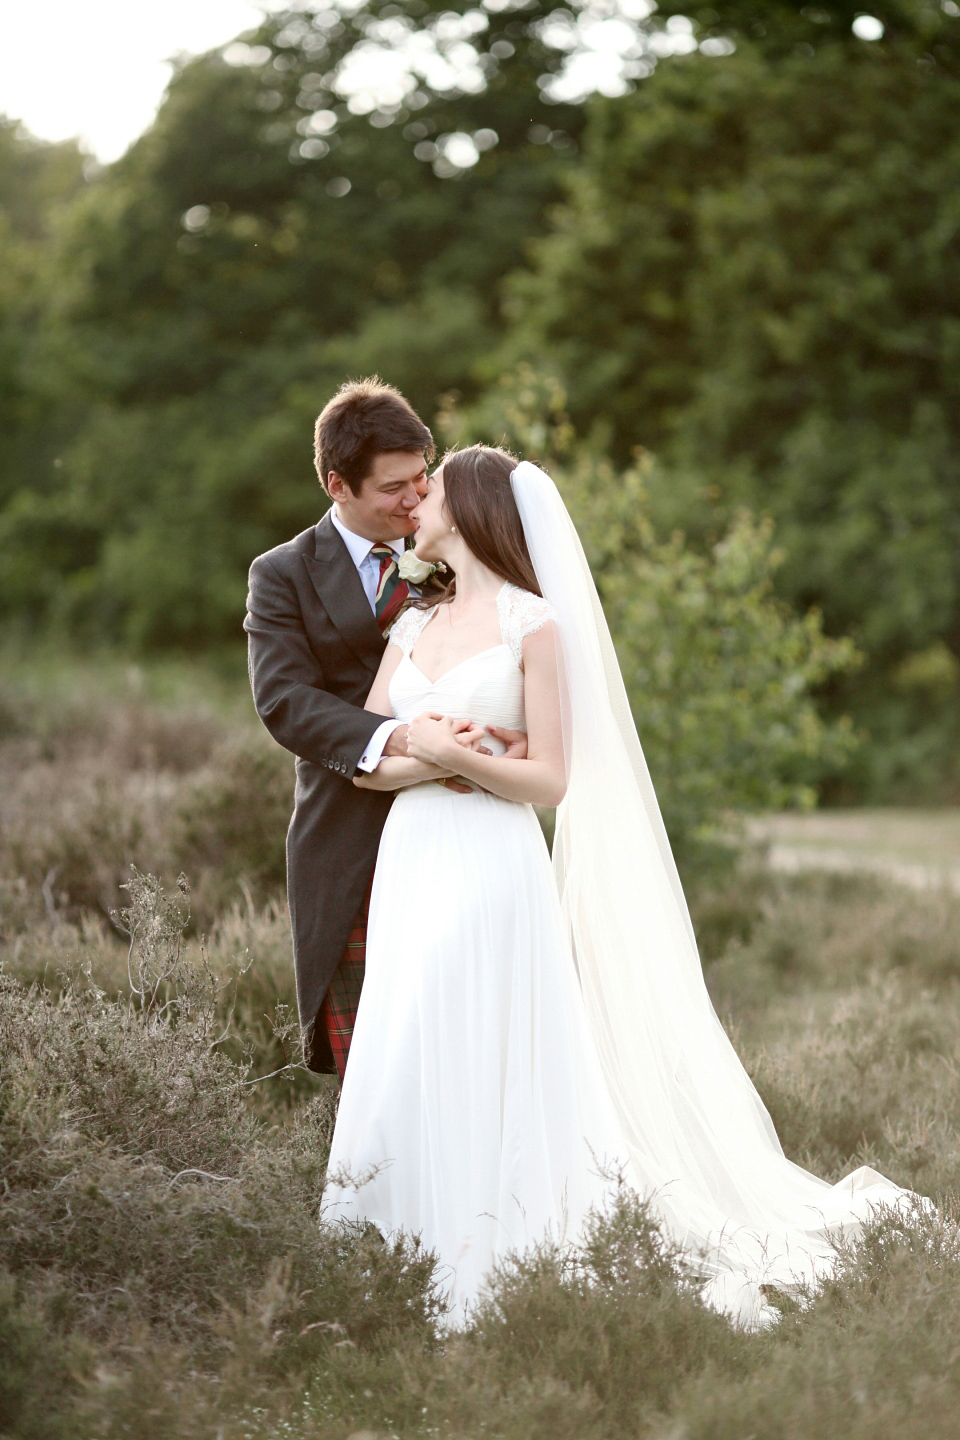 A Suzanne Neville Gown For Romantic, Countryside Wedding in